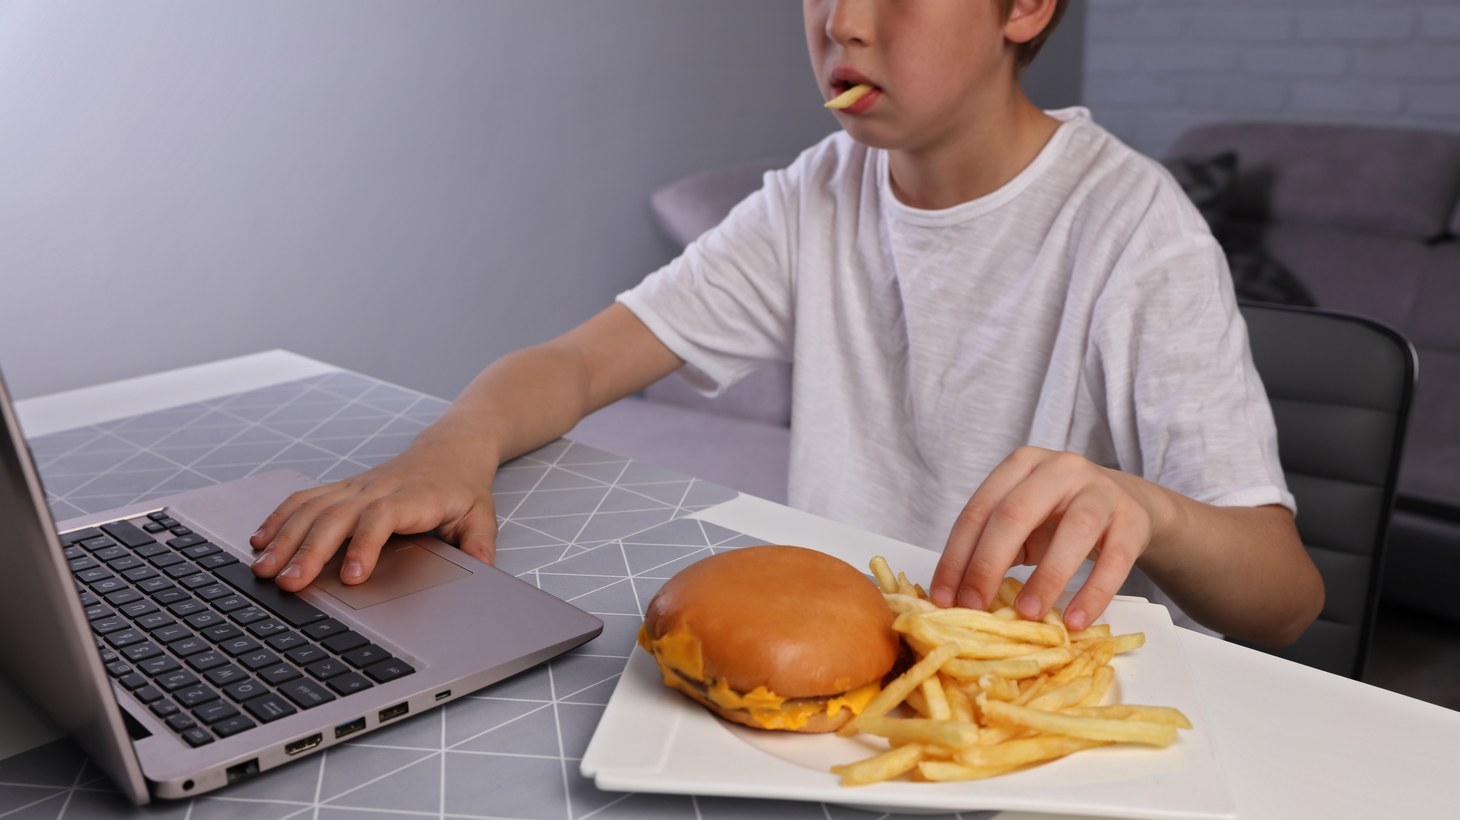 An adolescent eats fries and a hamburger while using their computer.